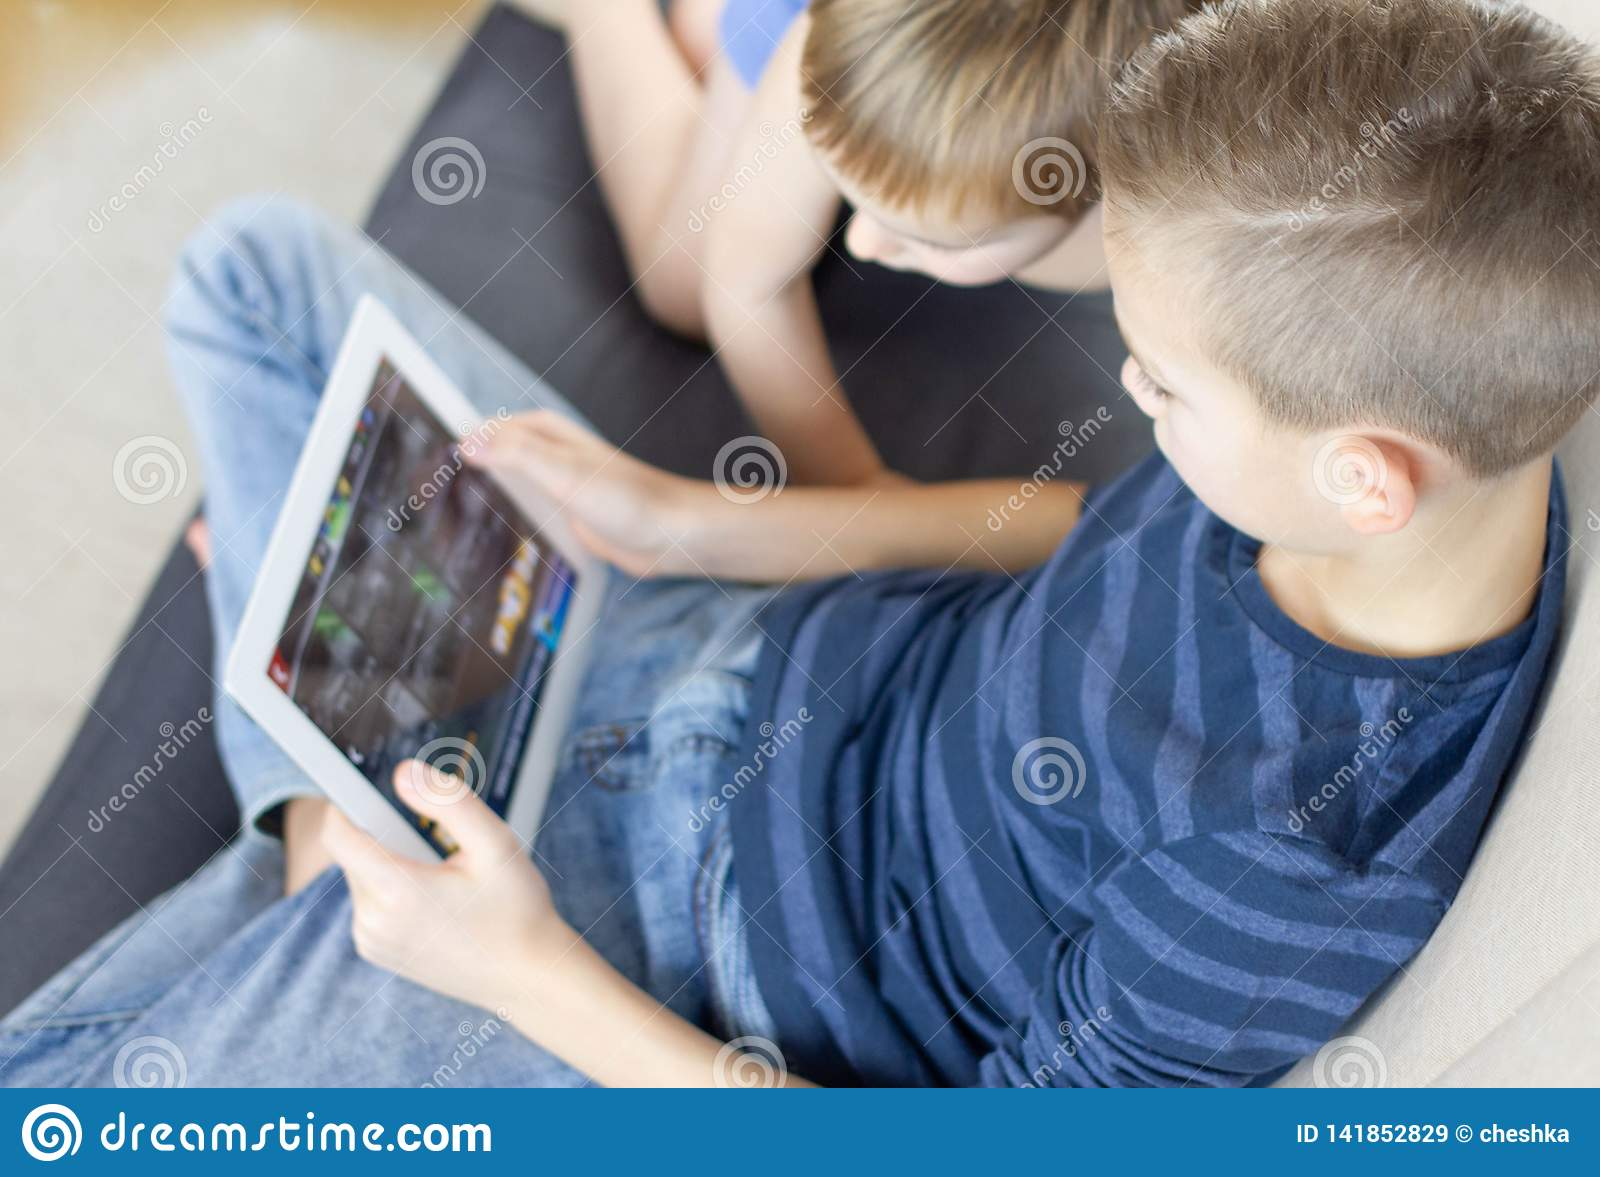 Two kids using tablet at home. Brothers with tablet computer in light room. Boys playing games on tablet pc, emotions.